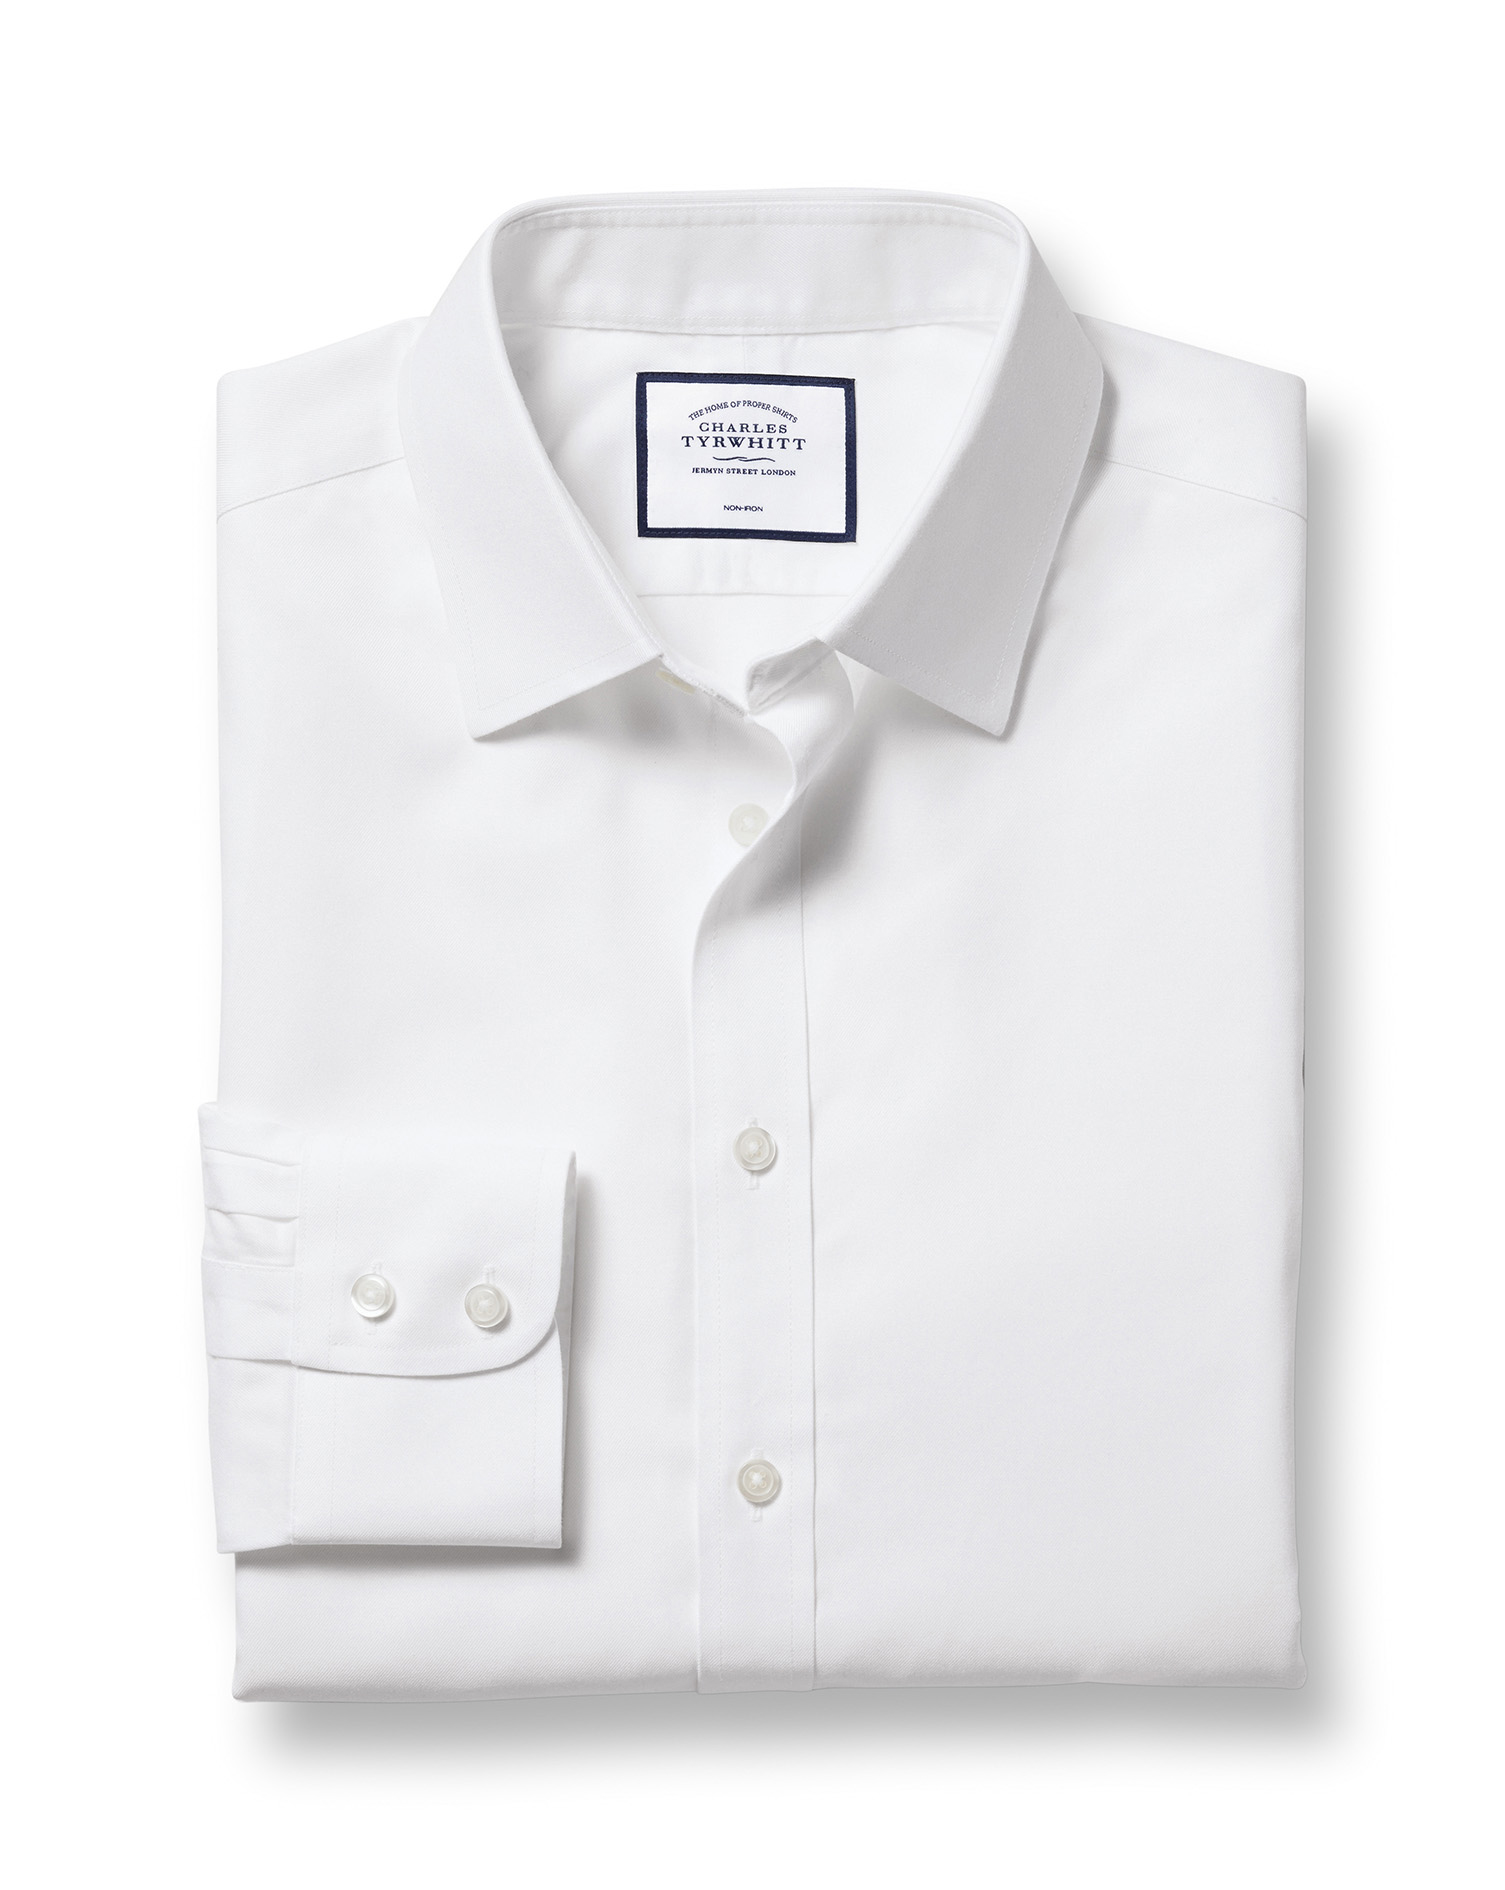 Classic Fit Non-Iron Twill White Cotton Formal Shirt Single Cuff Size 16/33 by Charles Tyrwhitt